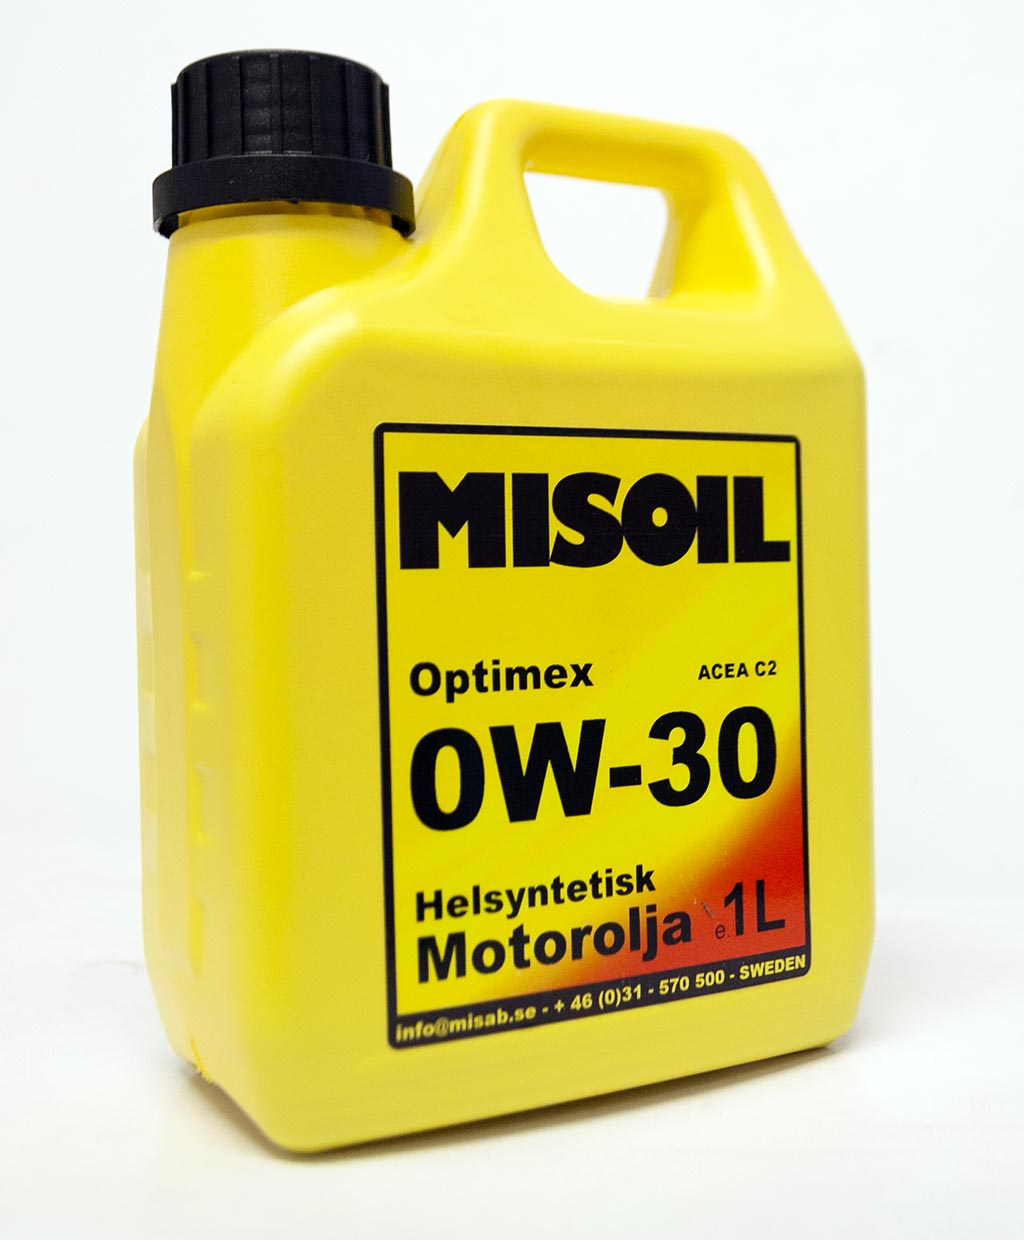 MISOIL OPTIMEX 0W-30